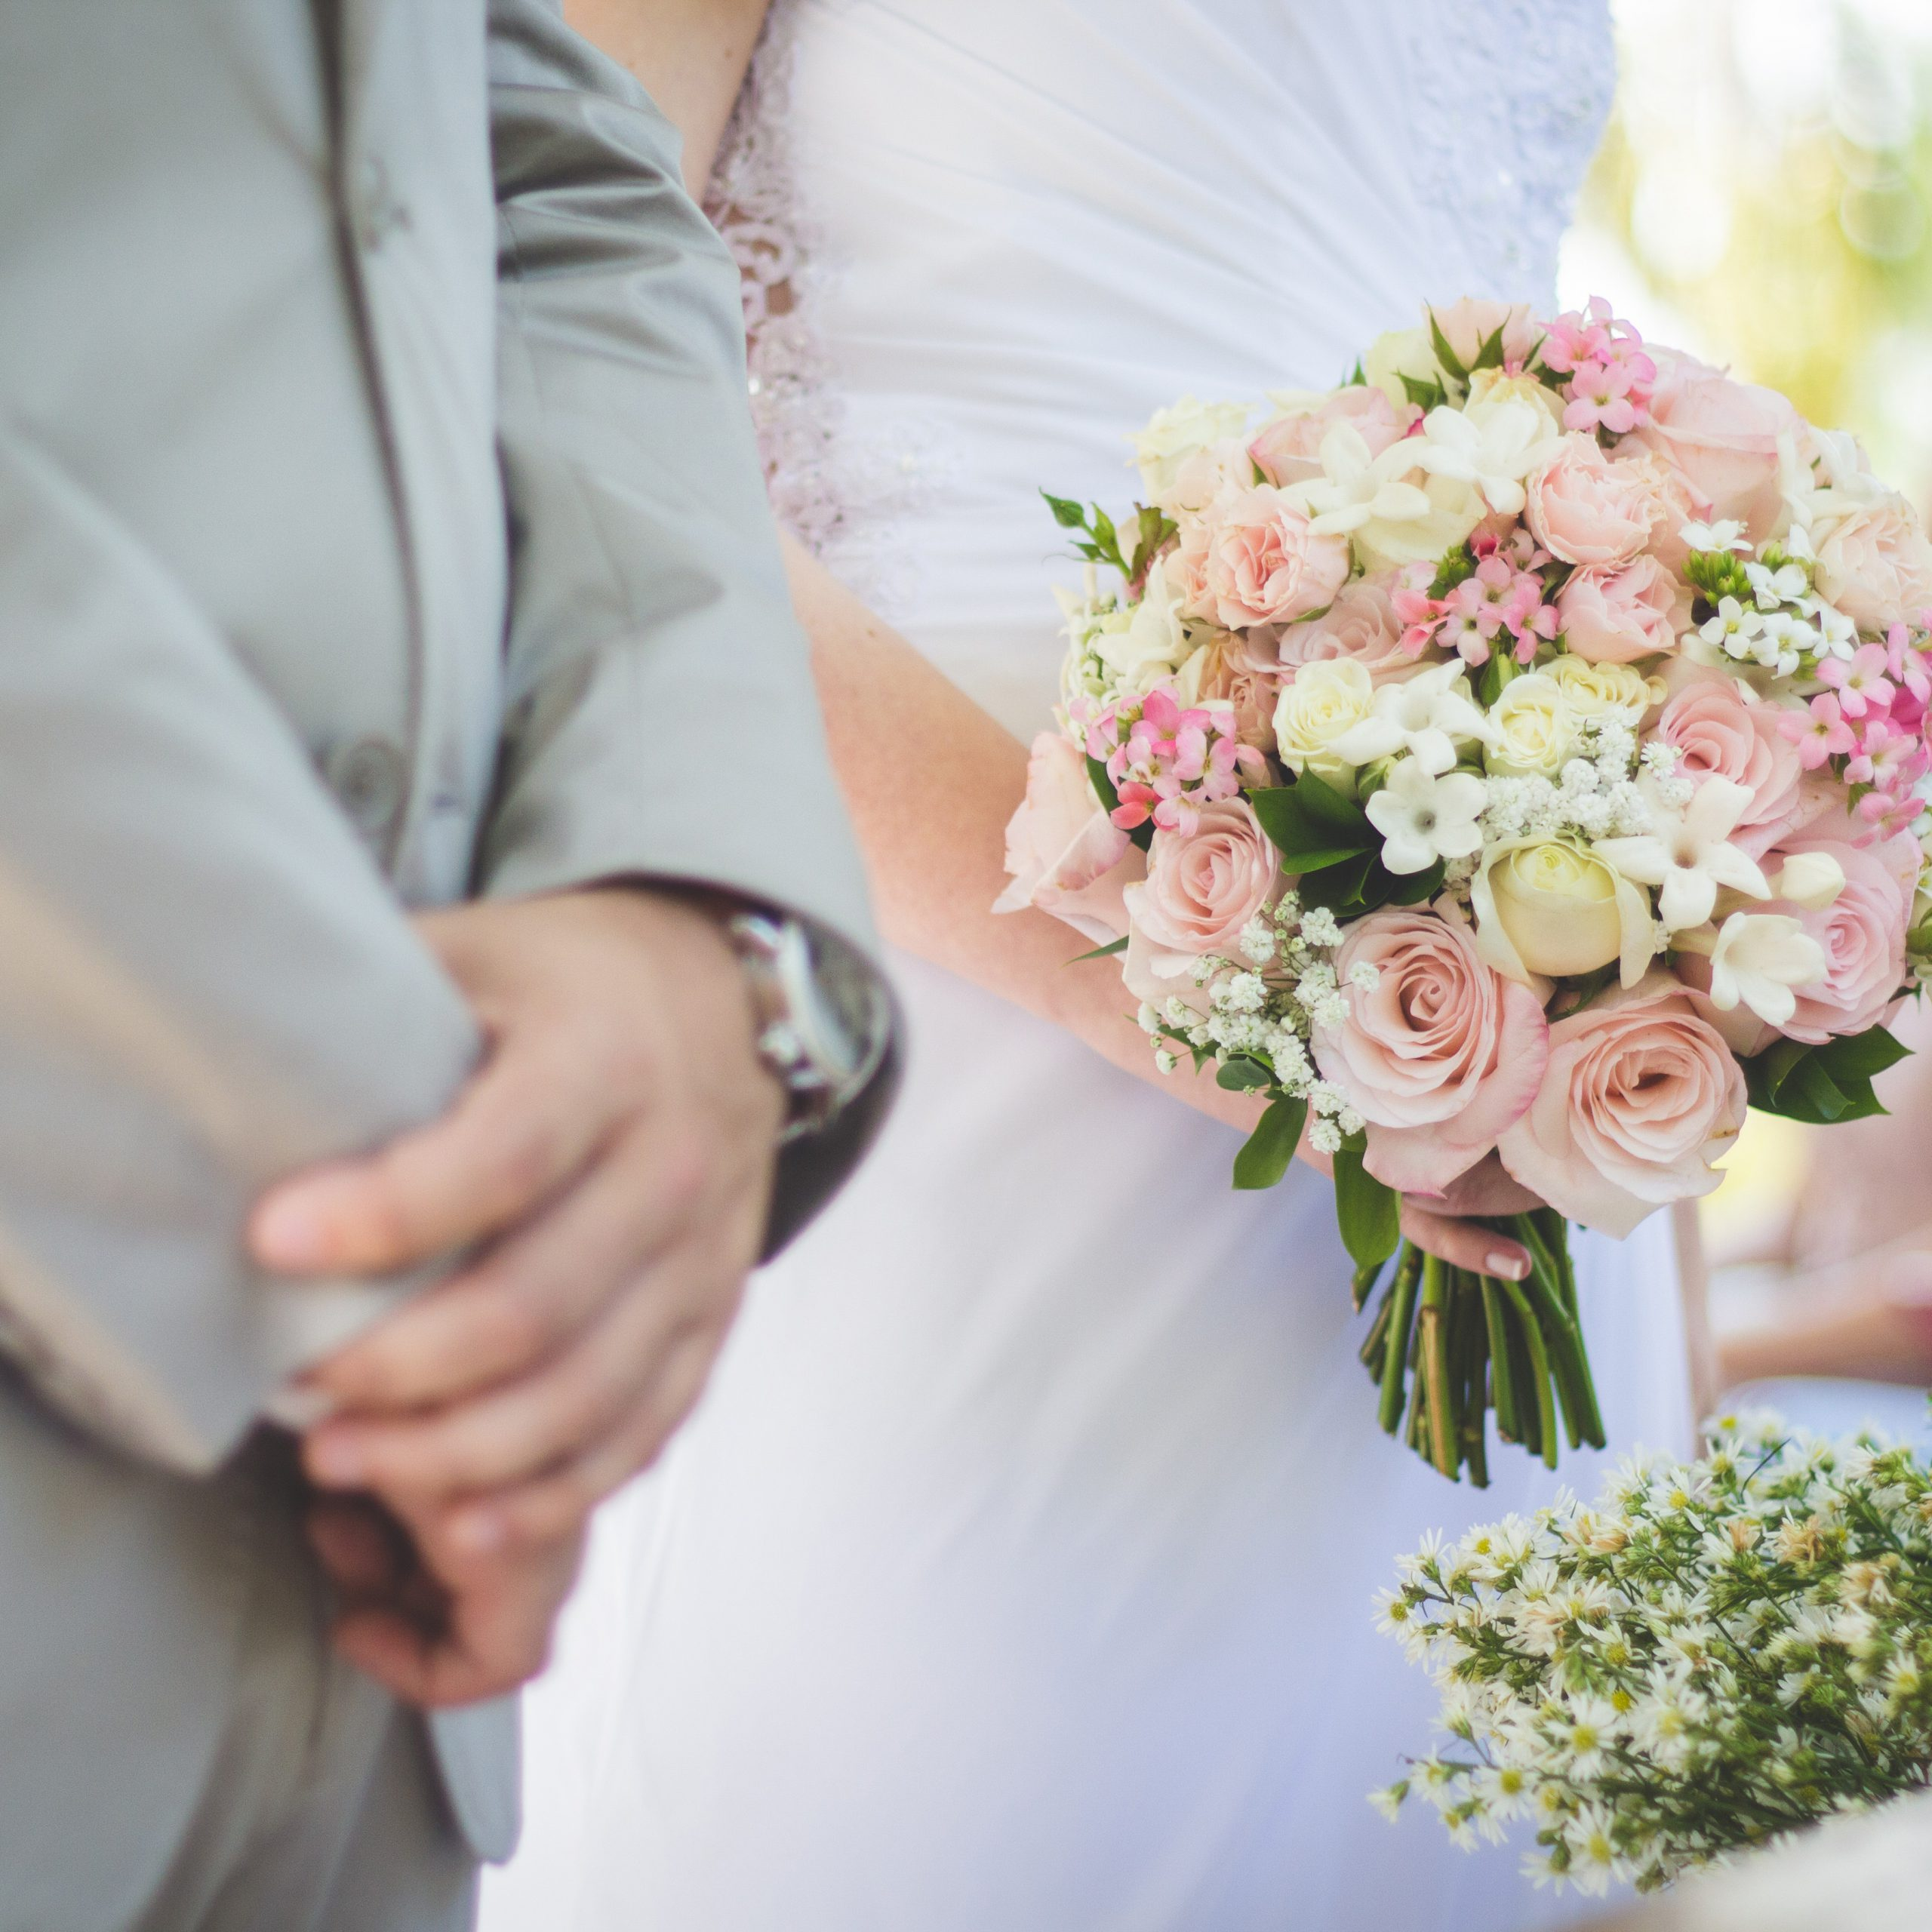 How To Ask A Girl To Marry You? 8 Must Read Steps